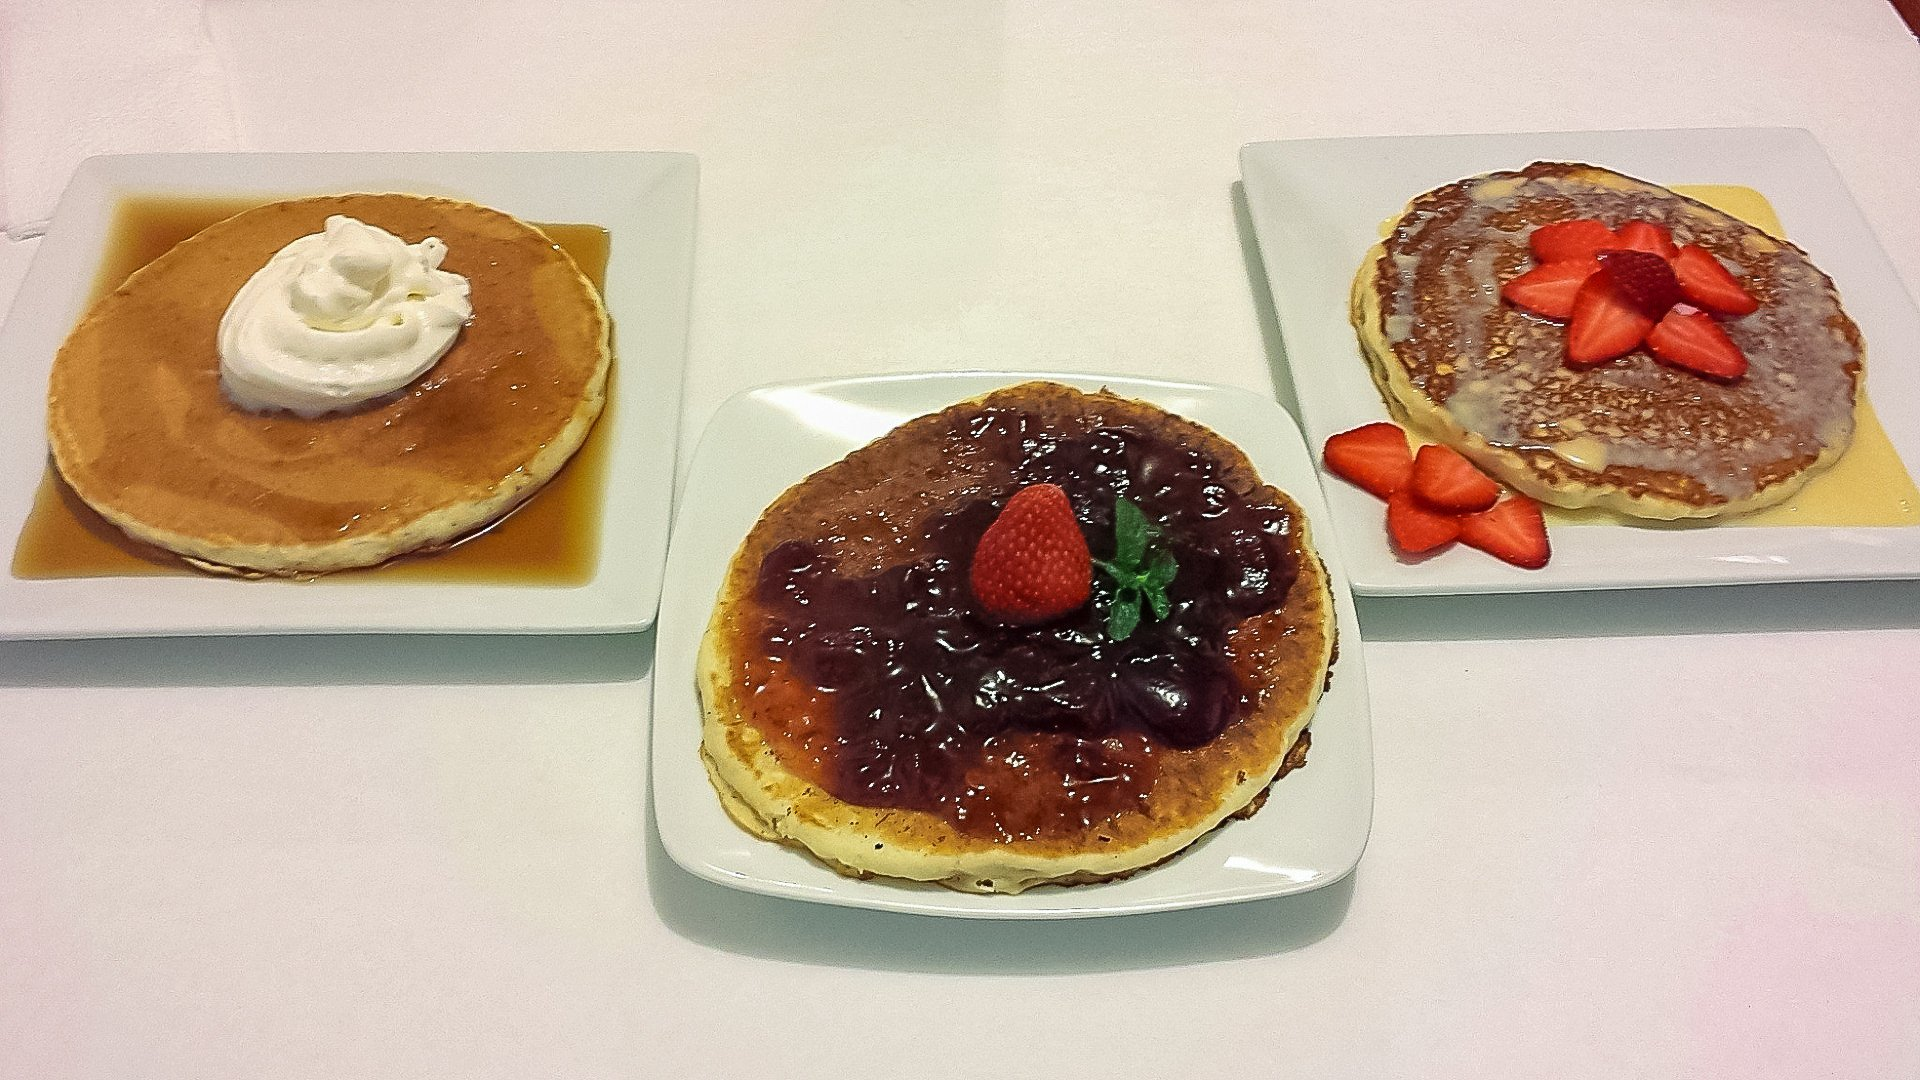 Three plates with pancakes with different toppings